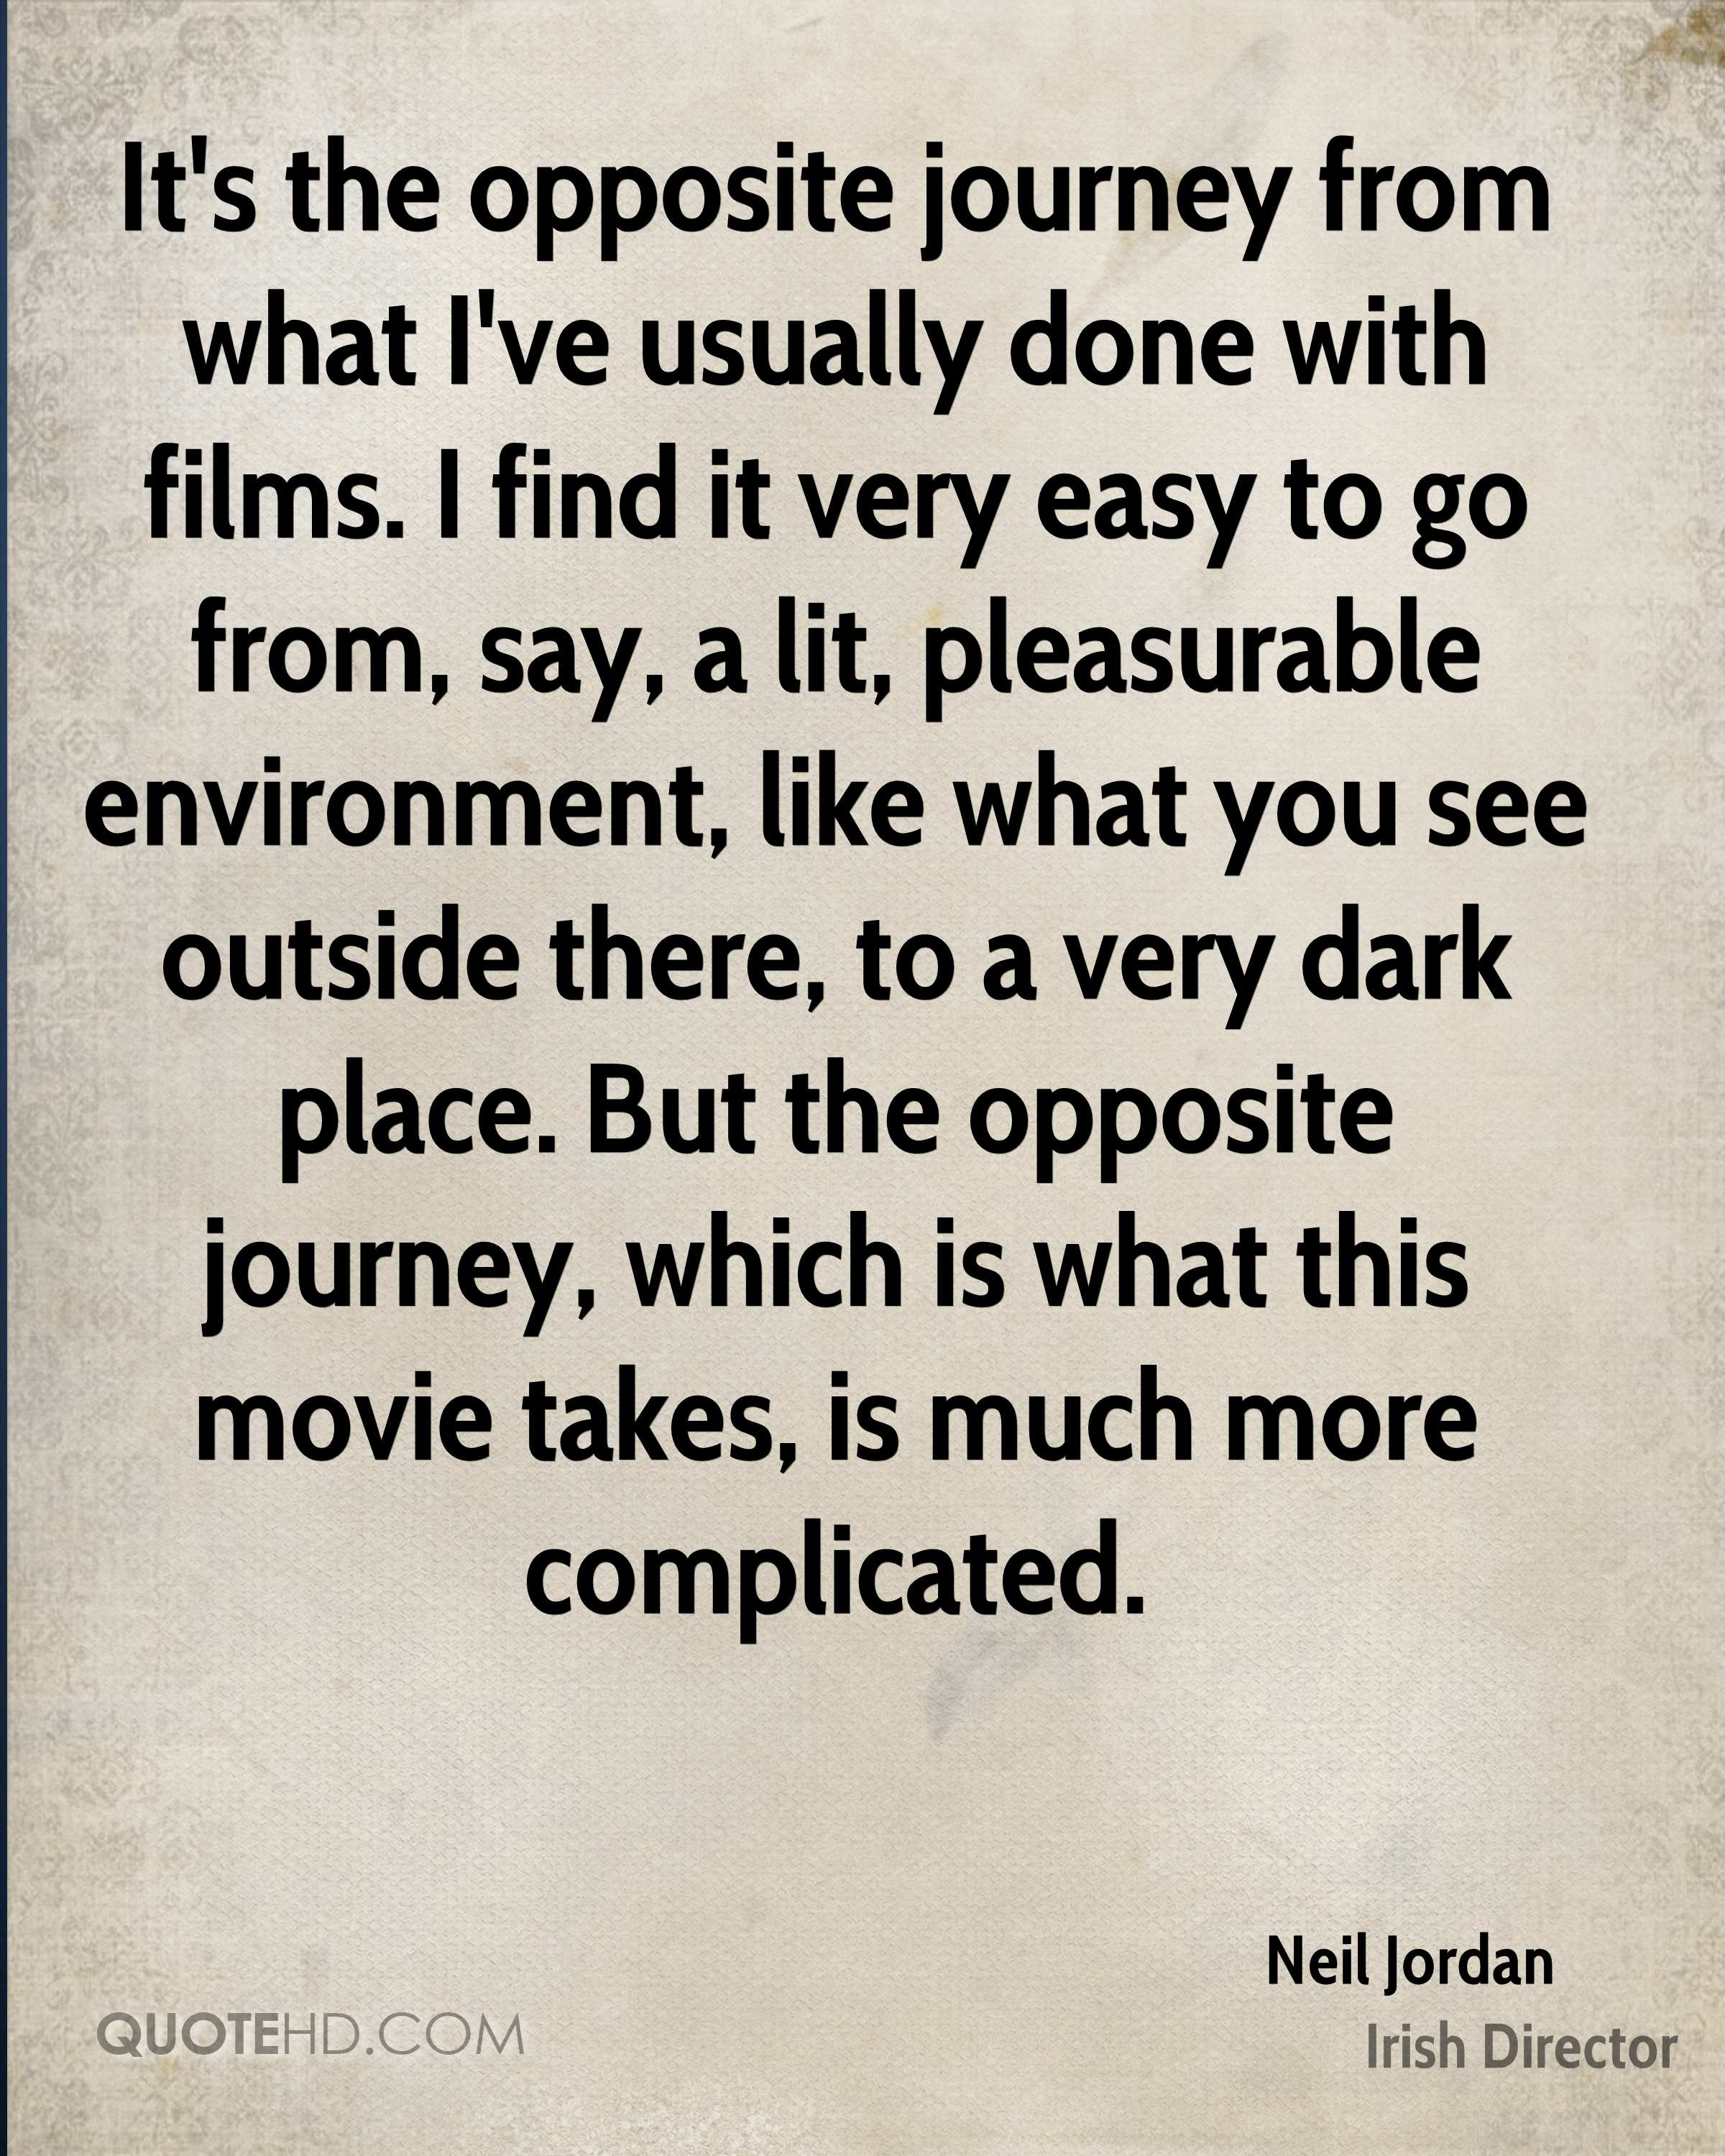 It's the opposite journey from what I've usually done with films. I find it very easy to go from, say, a lit, pleasurable environment, like what you see outside there, to a very dark place. But the opposite journey, which is what this movie takes, is much more complicated.